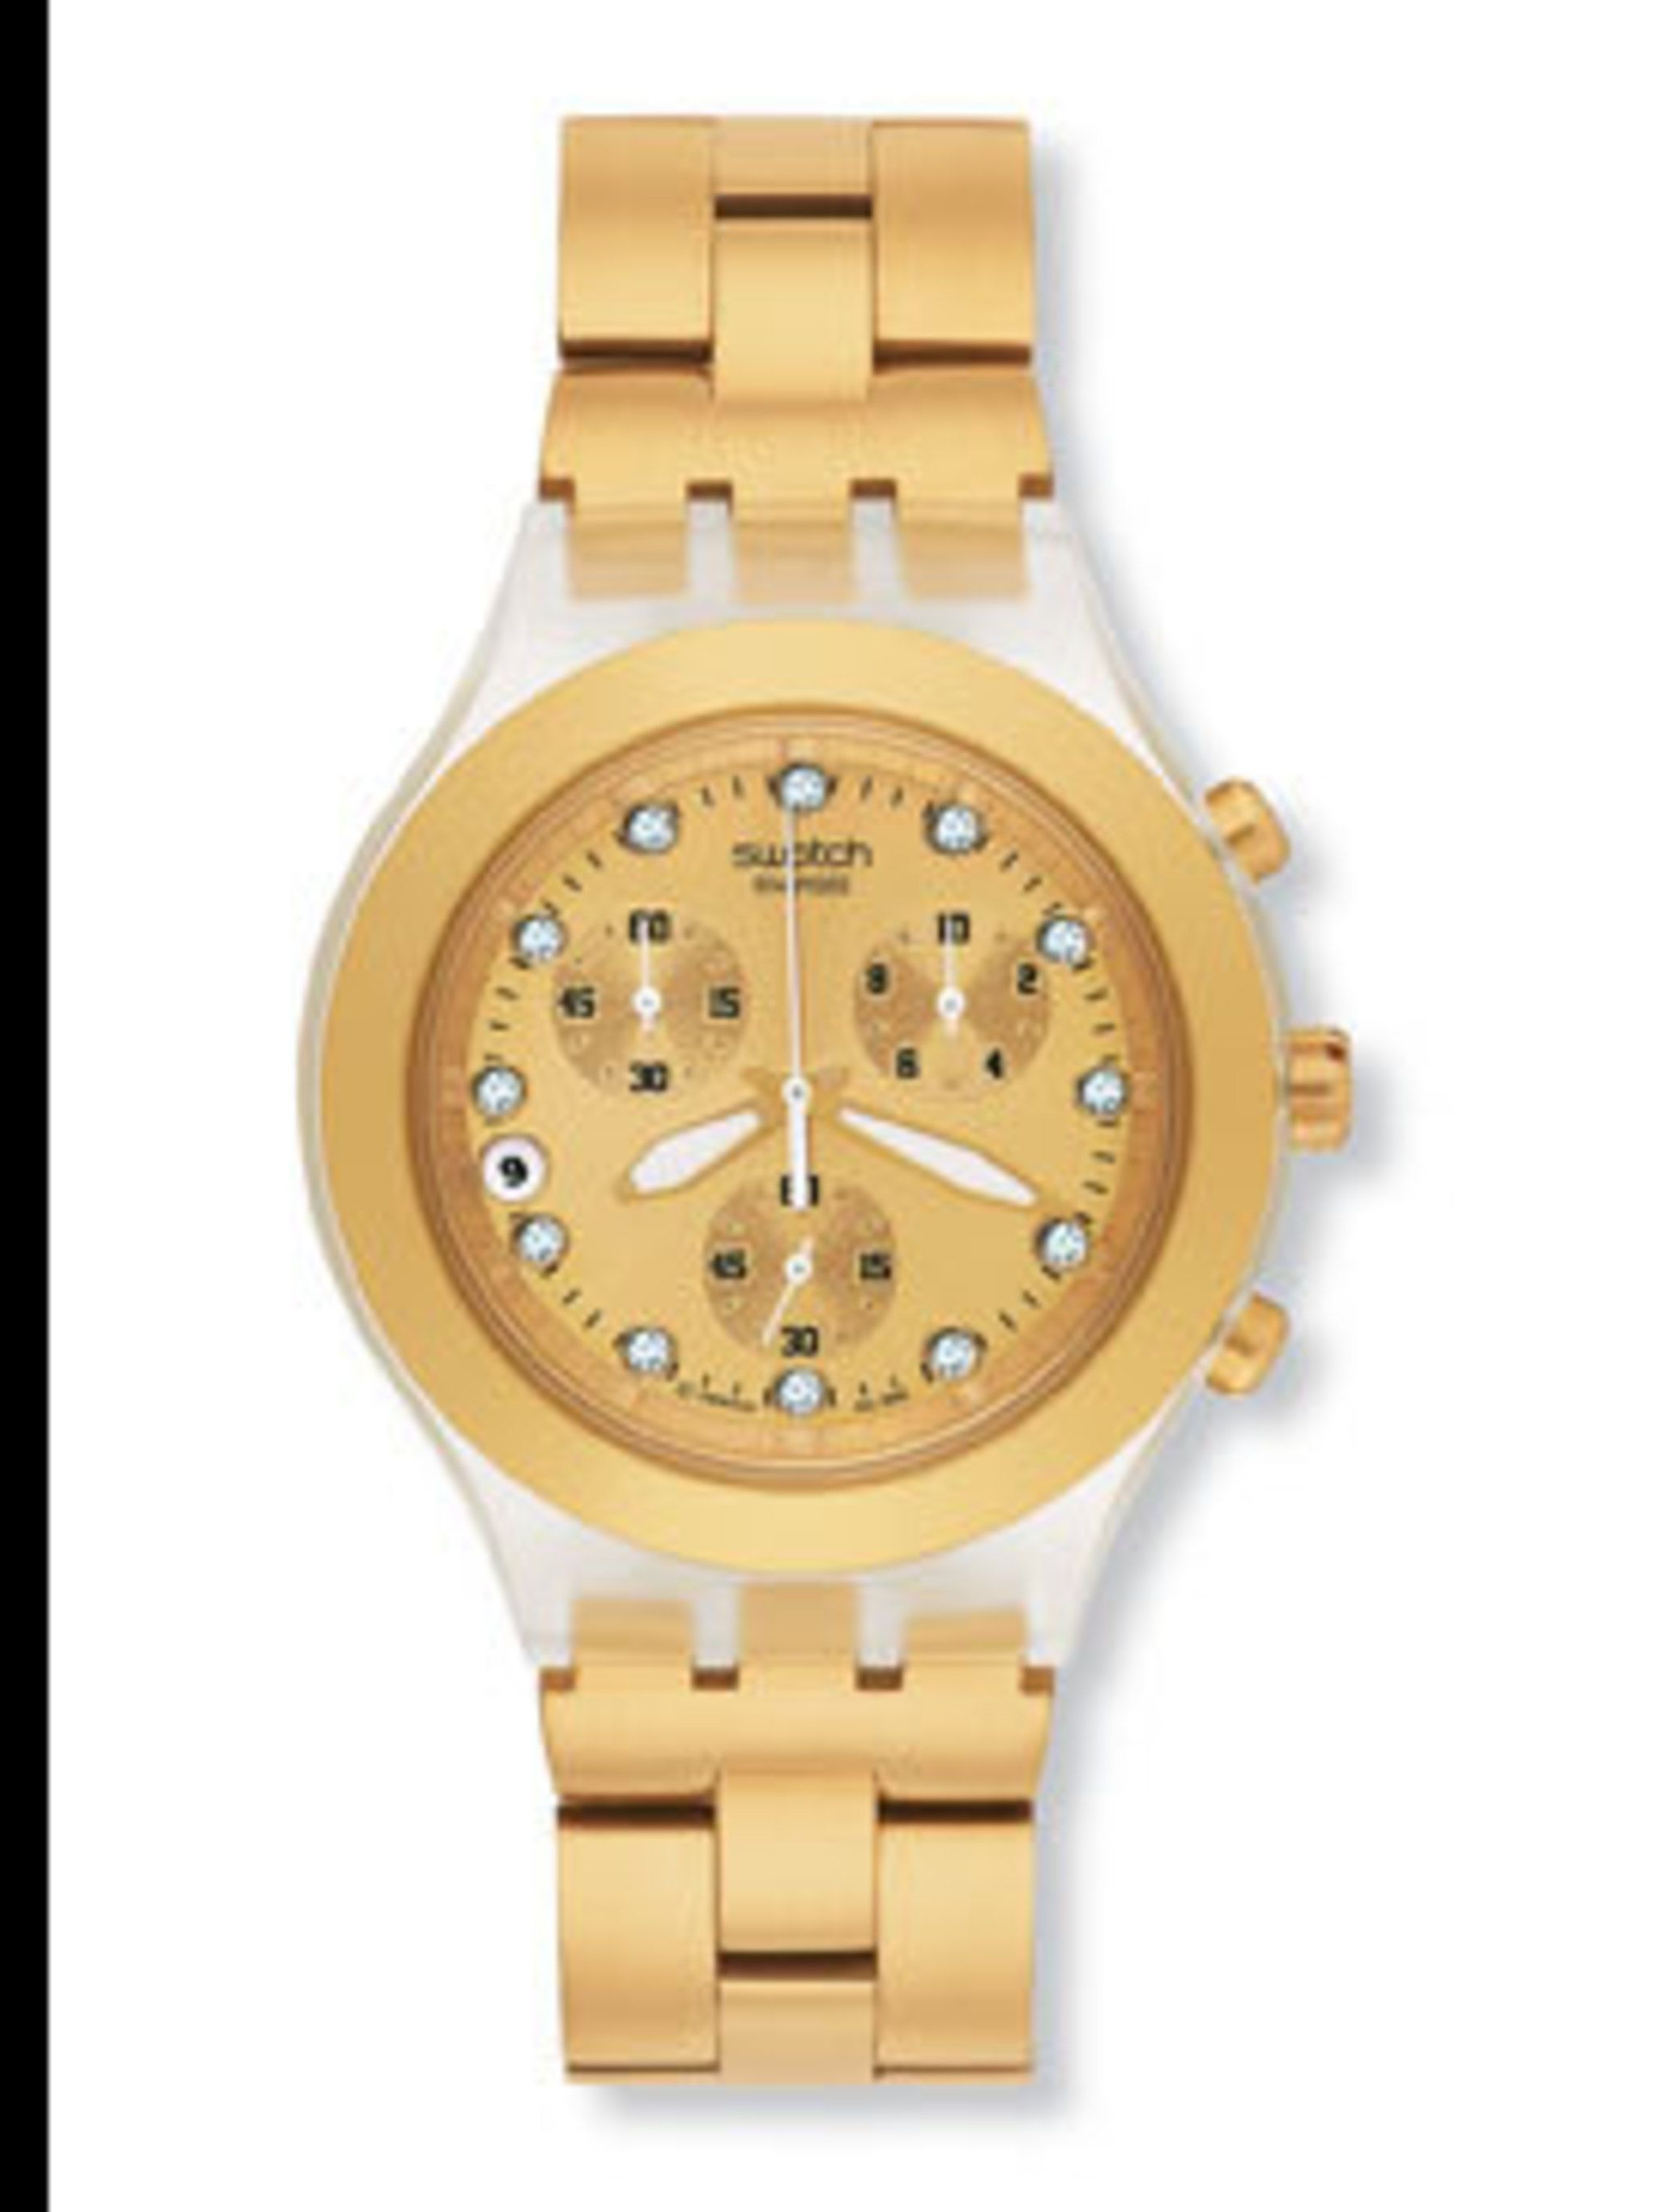 "<p>Gold watch, £85, by <a href=""http://eu-shop.swatch.com/eshop/uk/en/Watches/IRONY/Chronos/SVCK4032G.aspx"">Swatch</a></p>"